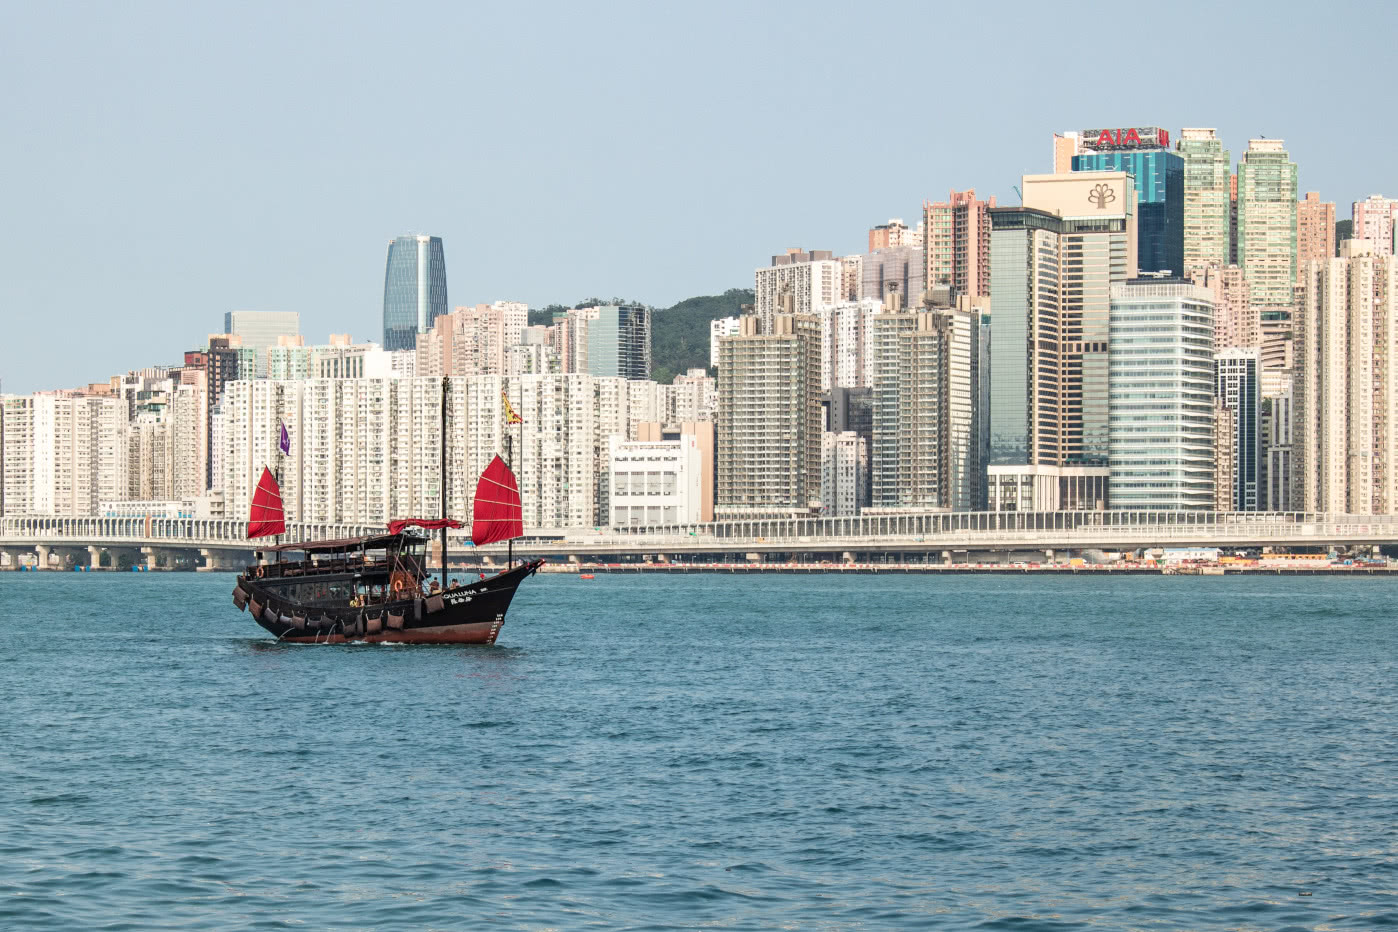 Unsere Backpacking Route durch Ostasien: Taiwan, Hong Kong und Macau